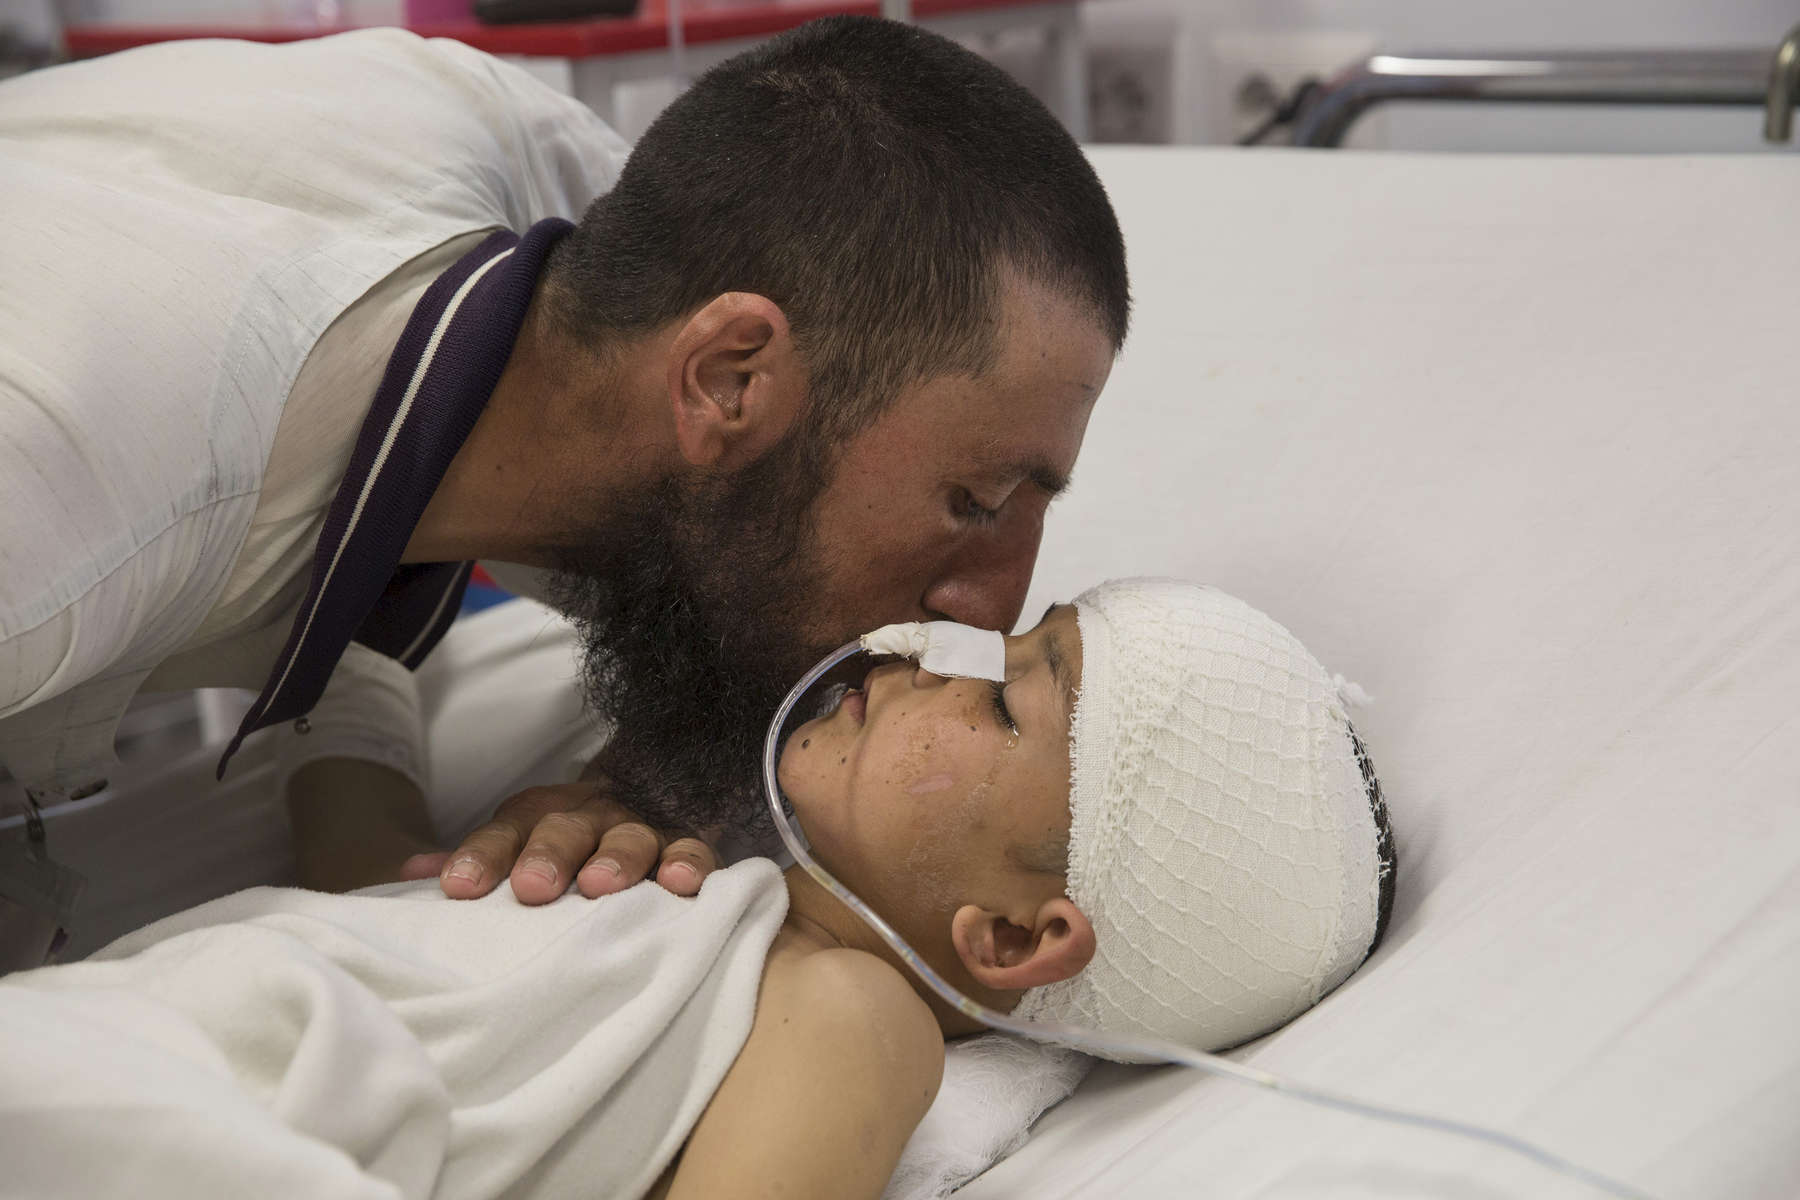 KABUL, AFGHANISTAN -MARCH 12, 2016:  Abdul Kabir kisses his son Noor Ahmad, 8, who is unconscious with a severe brain injury from an improvised explosive device (shell injury) from Mazar-E-Sharif Kabul on March 12, 2016. His father was also injured but recovered.As of April, 2016 the Emergency hospital stated that in the first quarter their patient numbers were up more than 30% from last year. They stated that patients are coming from much further distances now especially since the bombing of the MSF hospital in Kunduz last year which cared for many in the region.  Afghan civilians are at greater risk today than at any time since Taliban rule. According to UN statistics, in the first half of 2016 at least 1,600 people had died, and more than 3,500 people were injured, a 4 per cent increase in overall civilian causalities compared to the same period last year. The upsurge in violence has had devastating consequences for civilians, with suicide bombings and targeted attacks by the Taliban and other insurgents causing 70 percent of all civilian casualties.